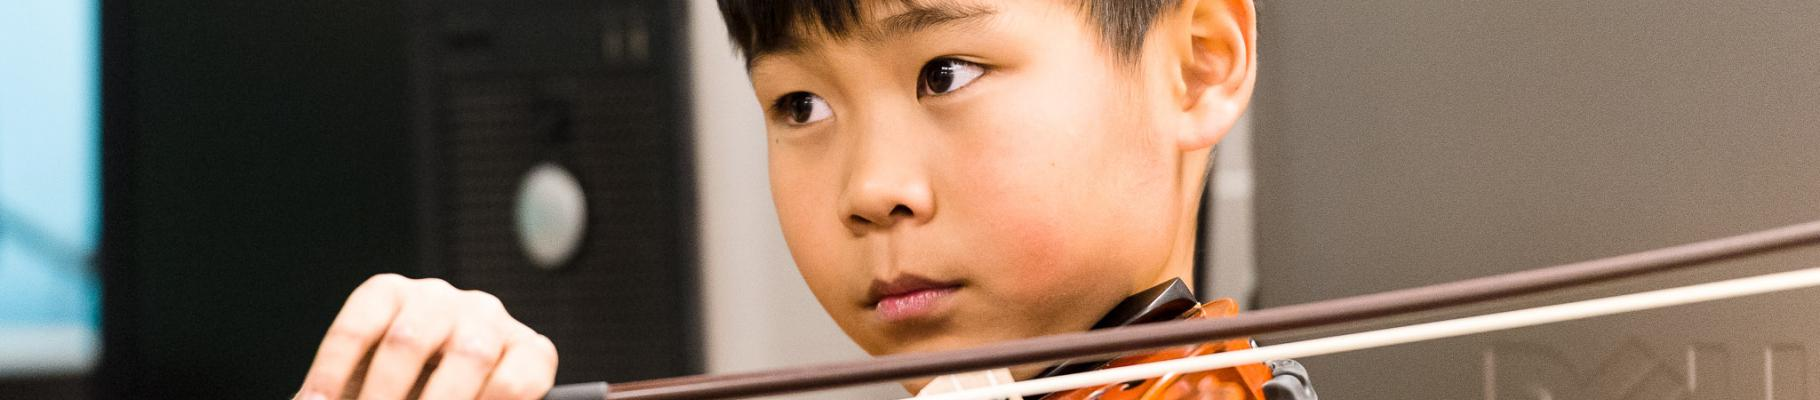 Boy focused with violin